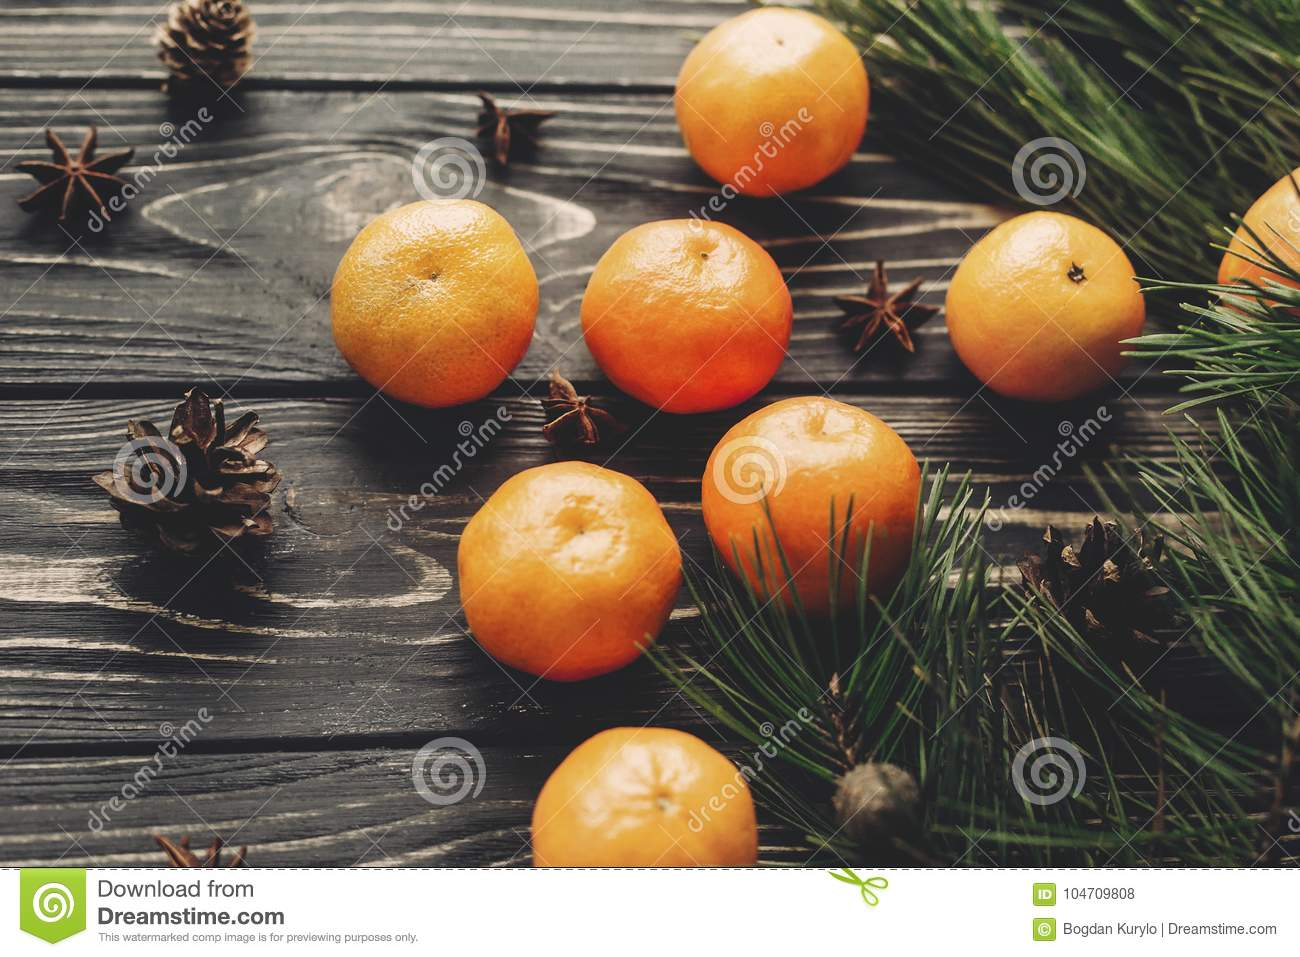 tangerines and fir branches anise and pine cones on rustic wooden background. merry christmas, seasonal greetings, happy holidays